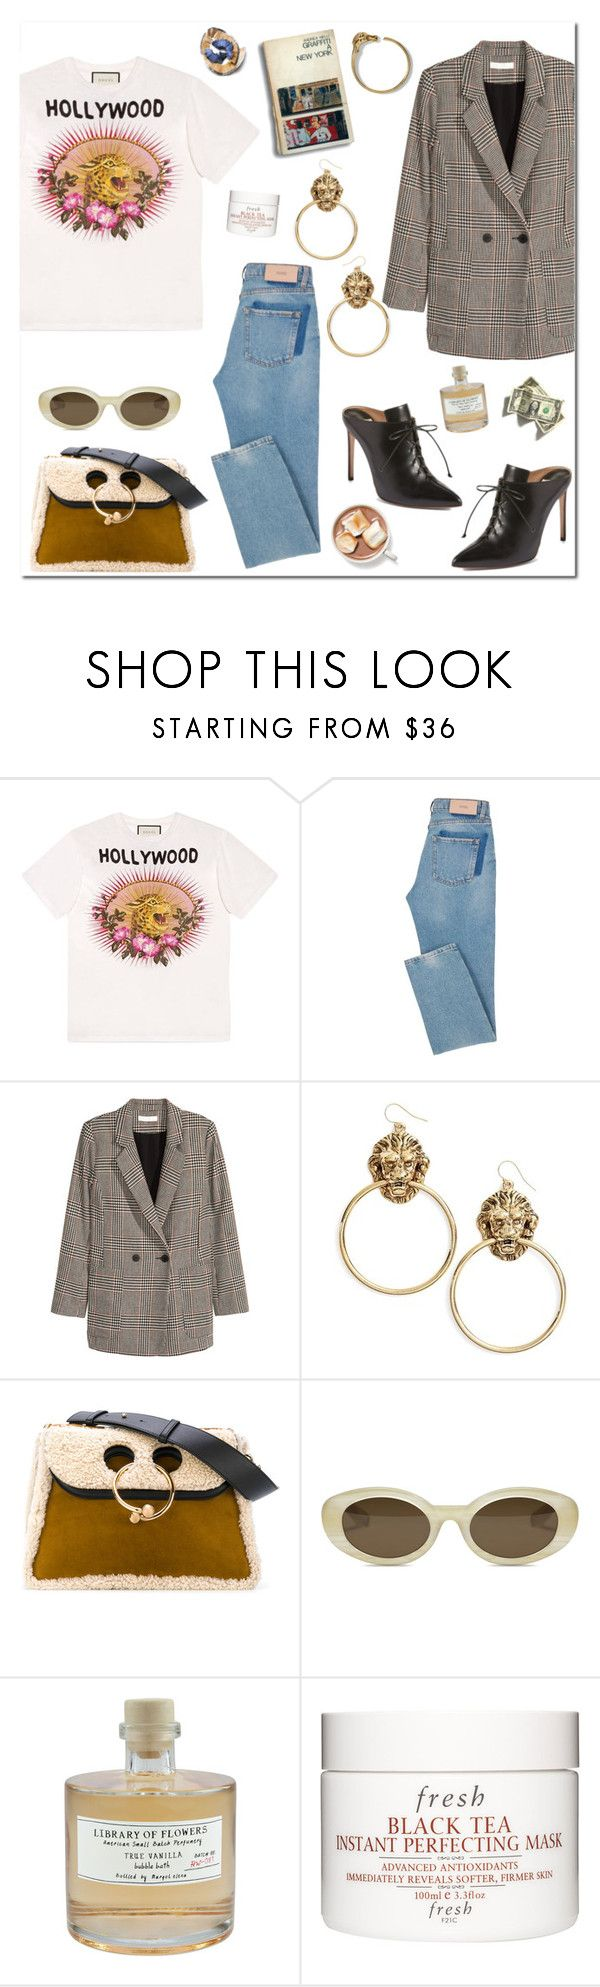 """""""Tshit look"""" by mjangirashvili ❤ liked on Polyvore featuring Gucci, Jakke, Vanessa Mooney, Francesco Russo, J.W. Anderson, Elizabeth and James, Library of Flowers and Fresh"""